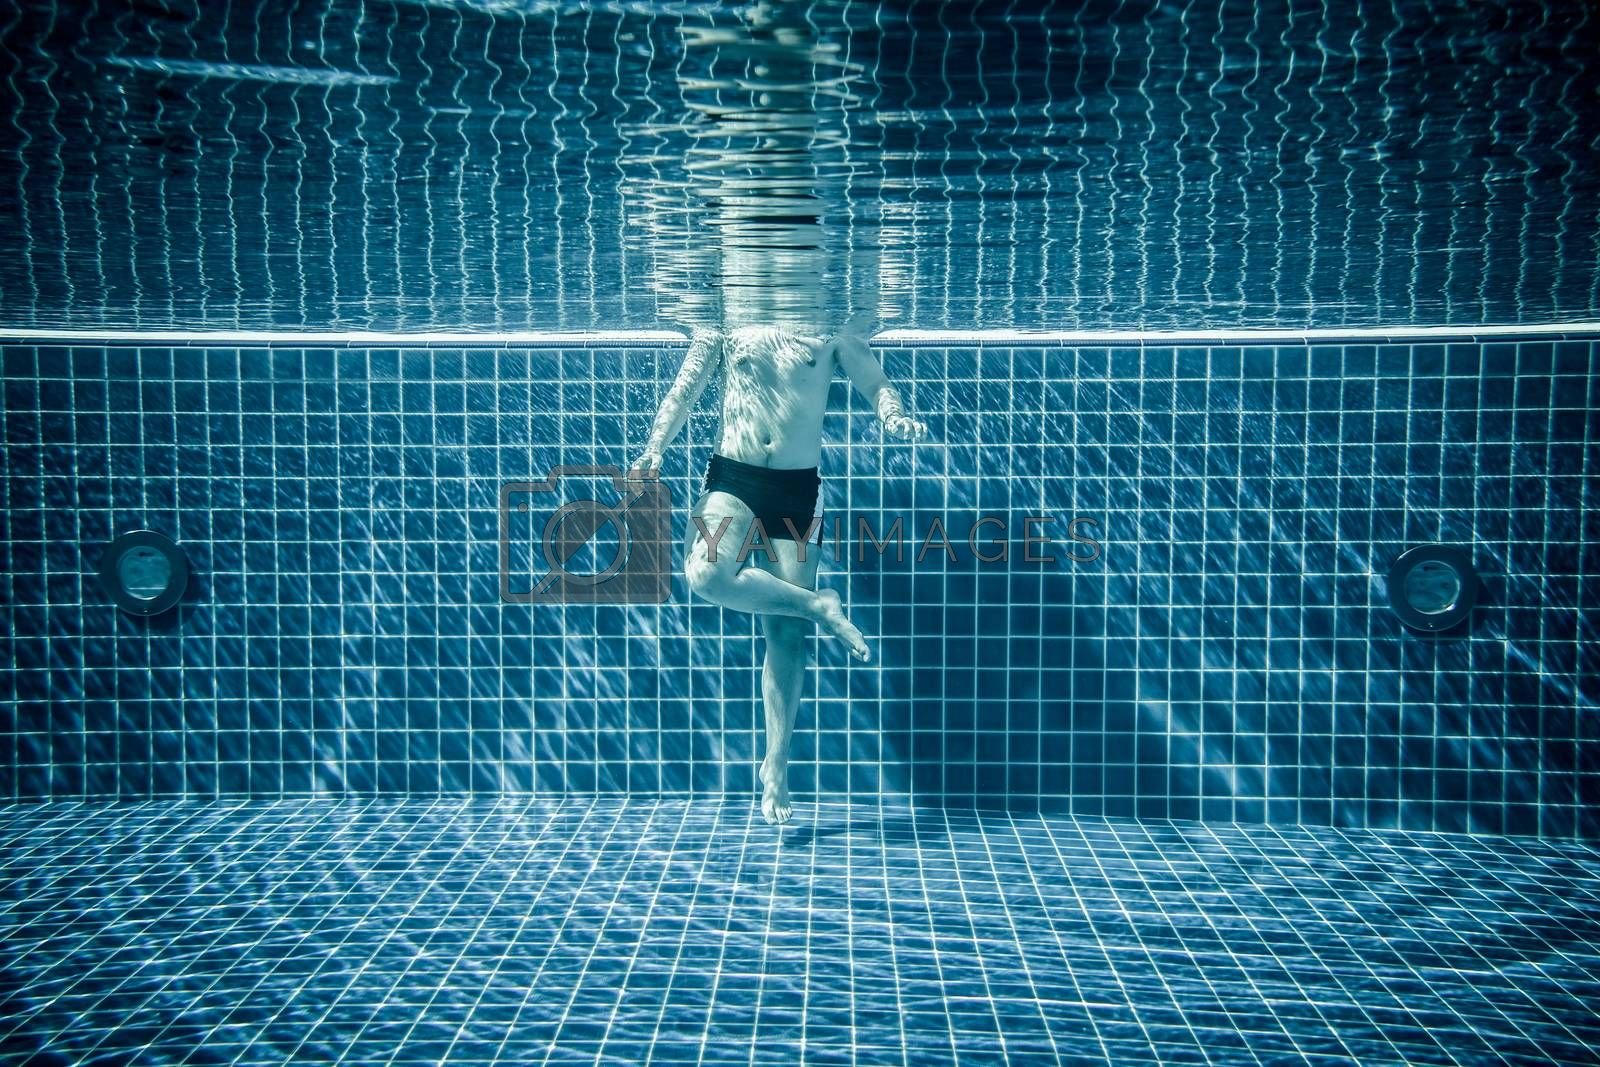 Man standing under water in a swimming pool